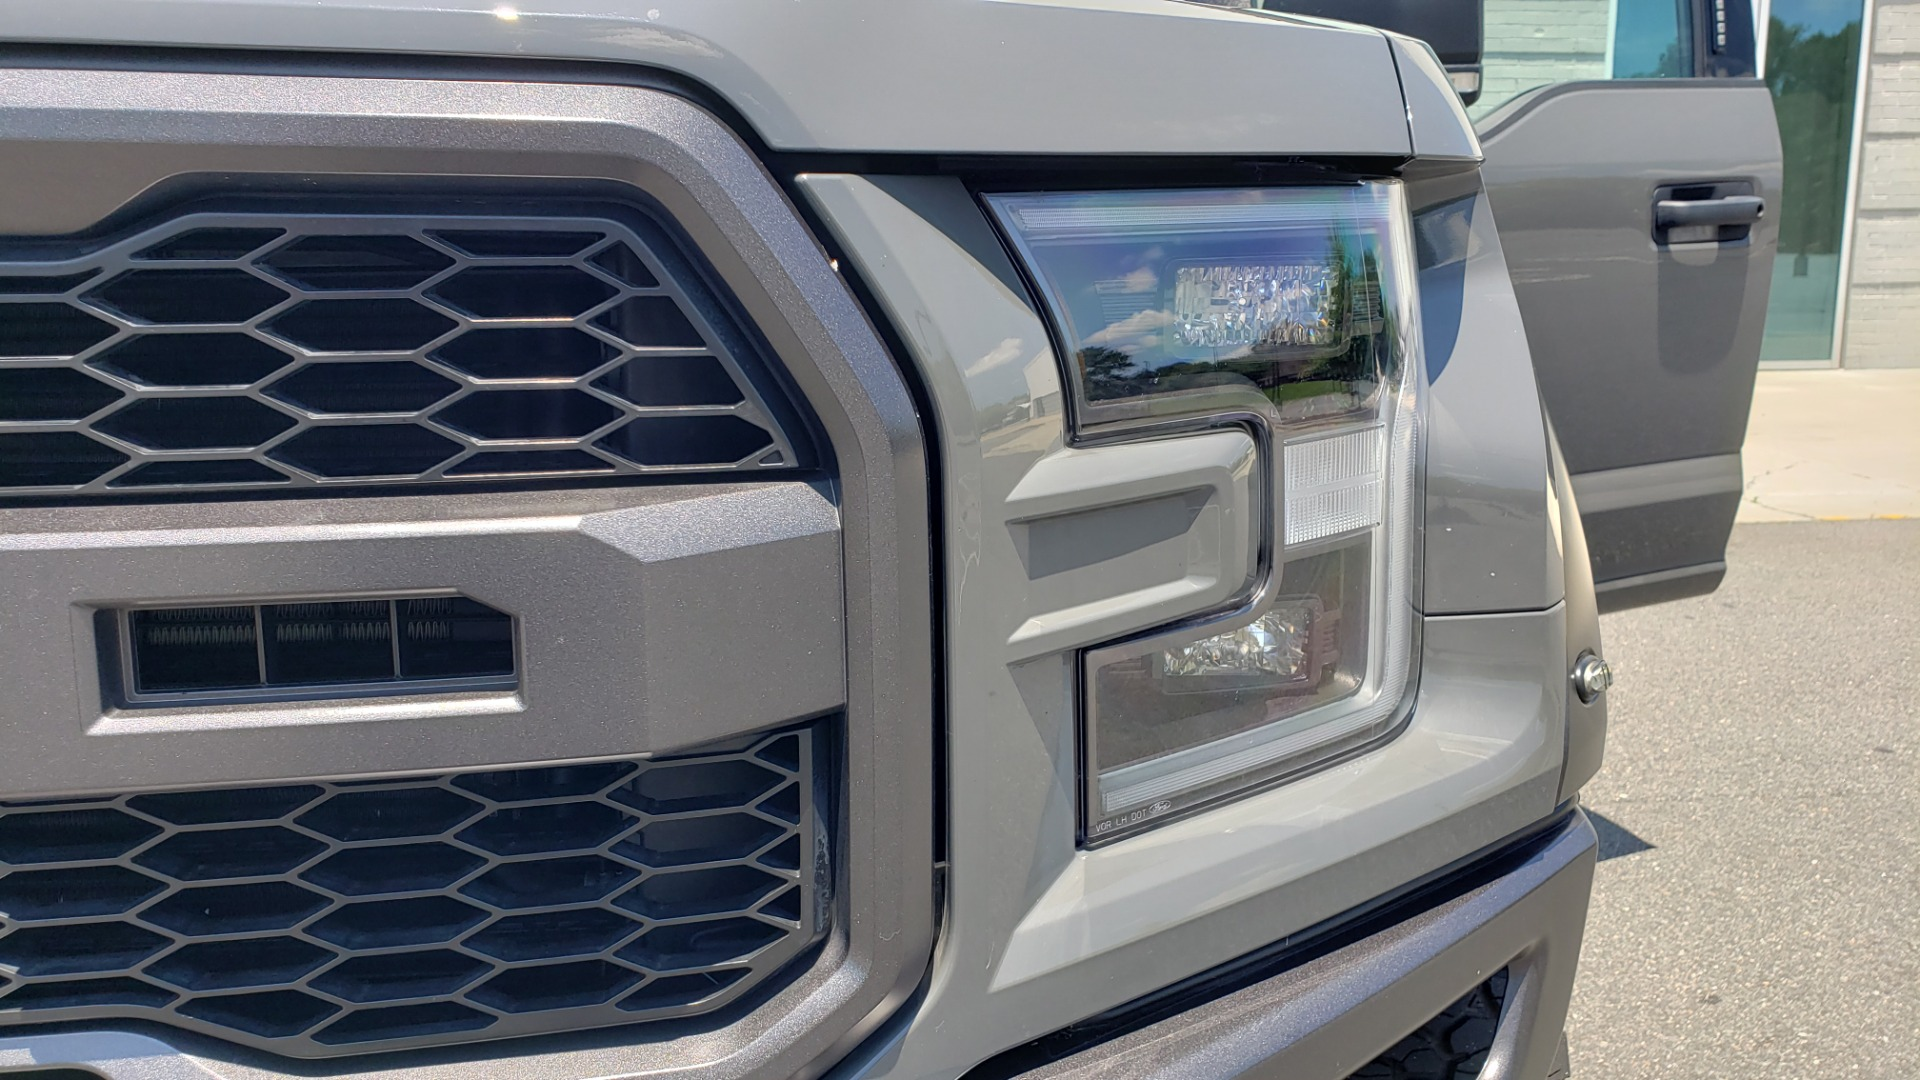 Used 2020 Ford F-150 RAPTOR 4X4 SUPERCREW / 3.5L ECOBOOST / 10-SPD AUTO / SUNROOF / REARVIEW for sale $82,500 at Formula Imports in Charlotte NC 28227 23